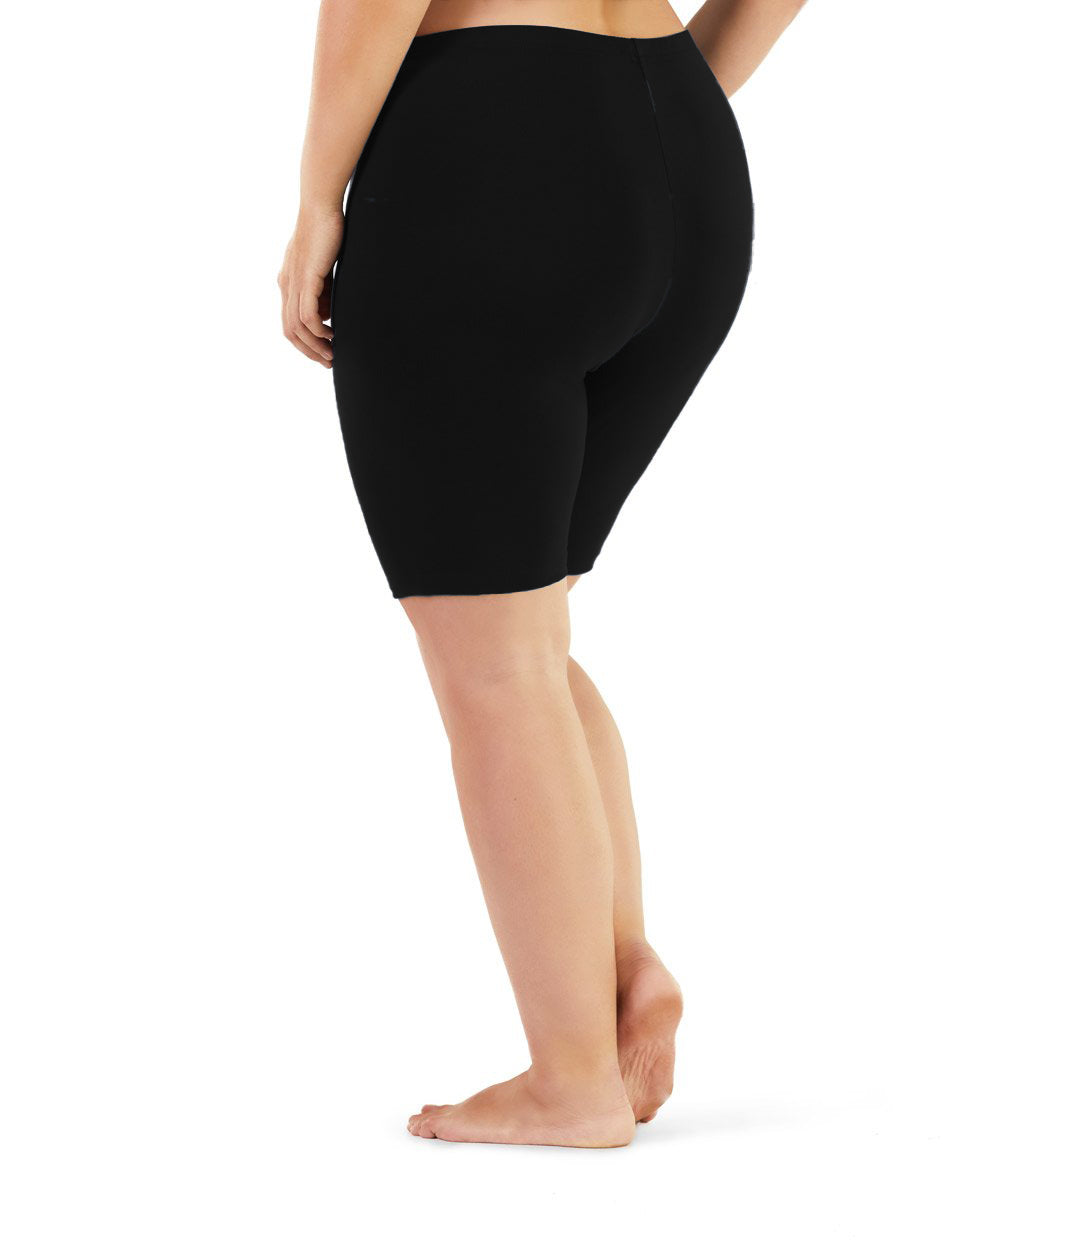 Stretch Naturals Bike Shorts-Bottoms Shorts-Hop Wo Trading Co Ltd-XL-Black-JunoActive